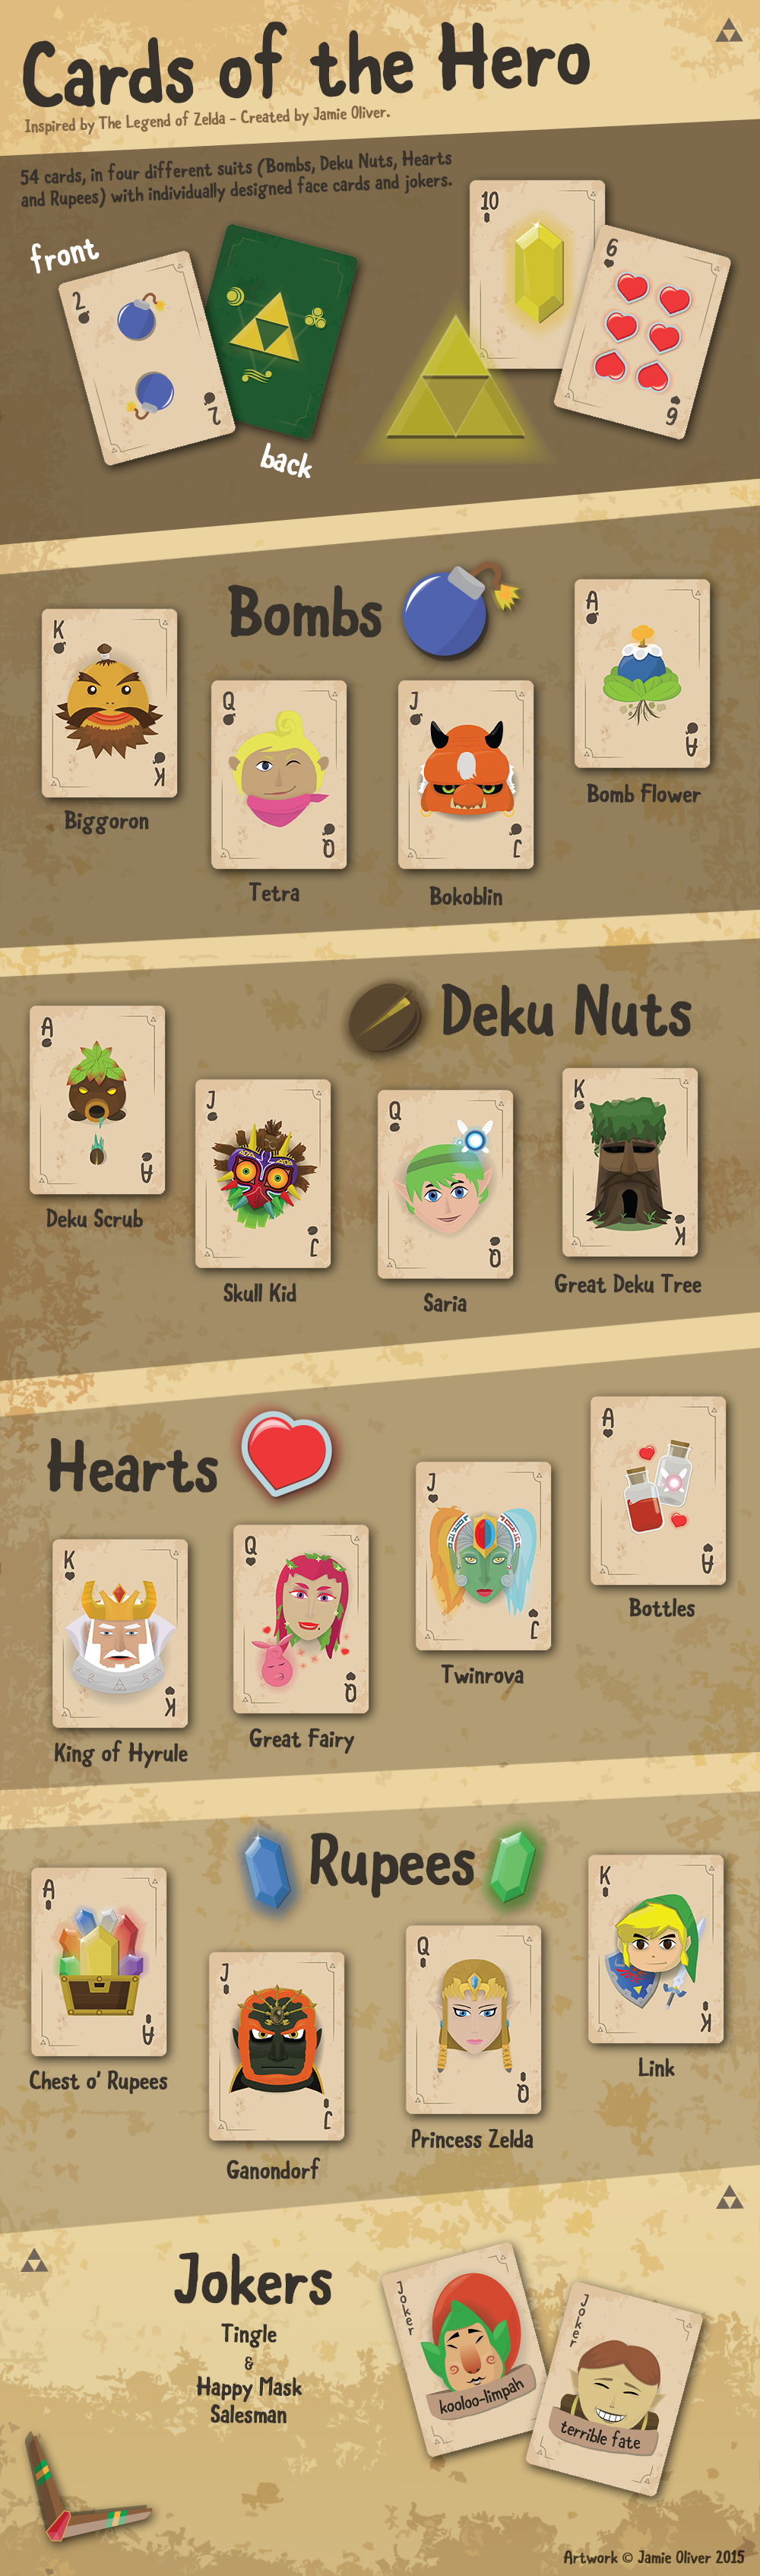 Cards of the Hero